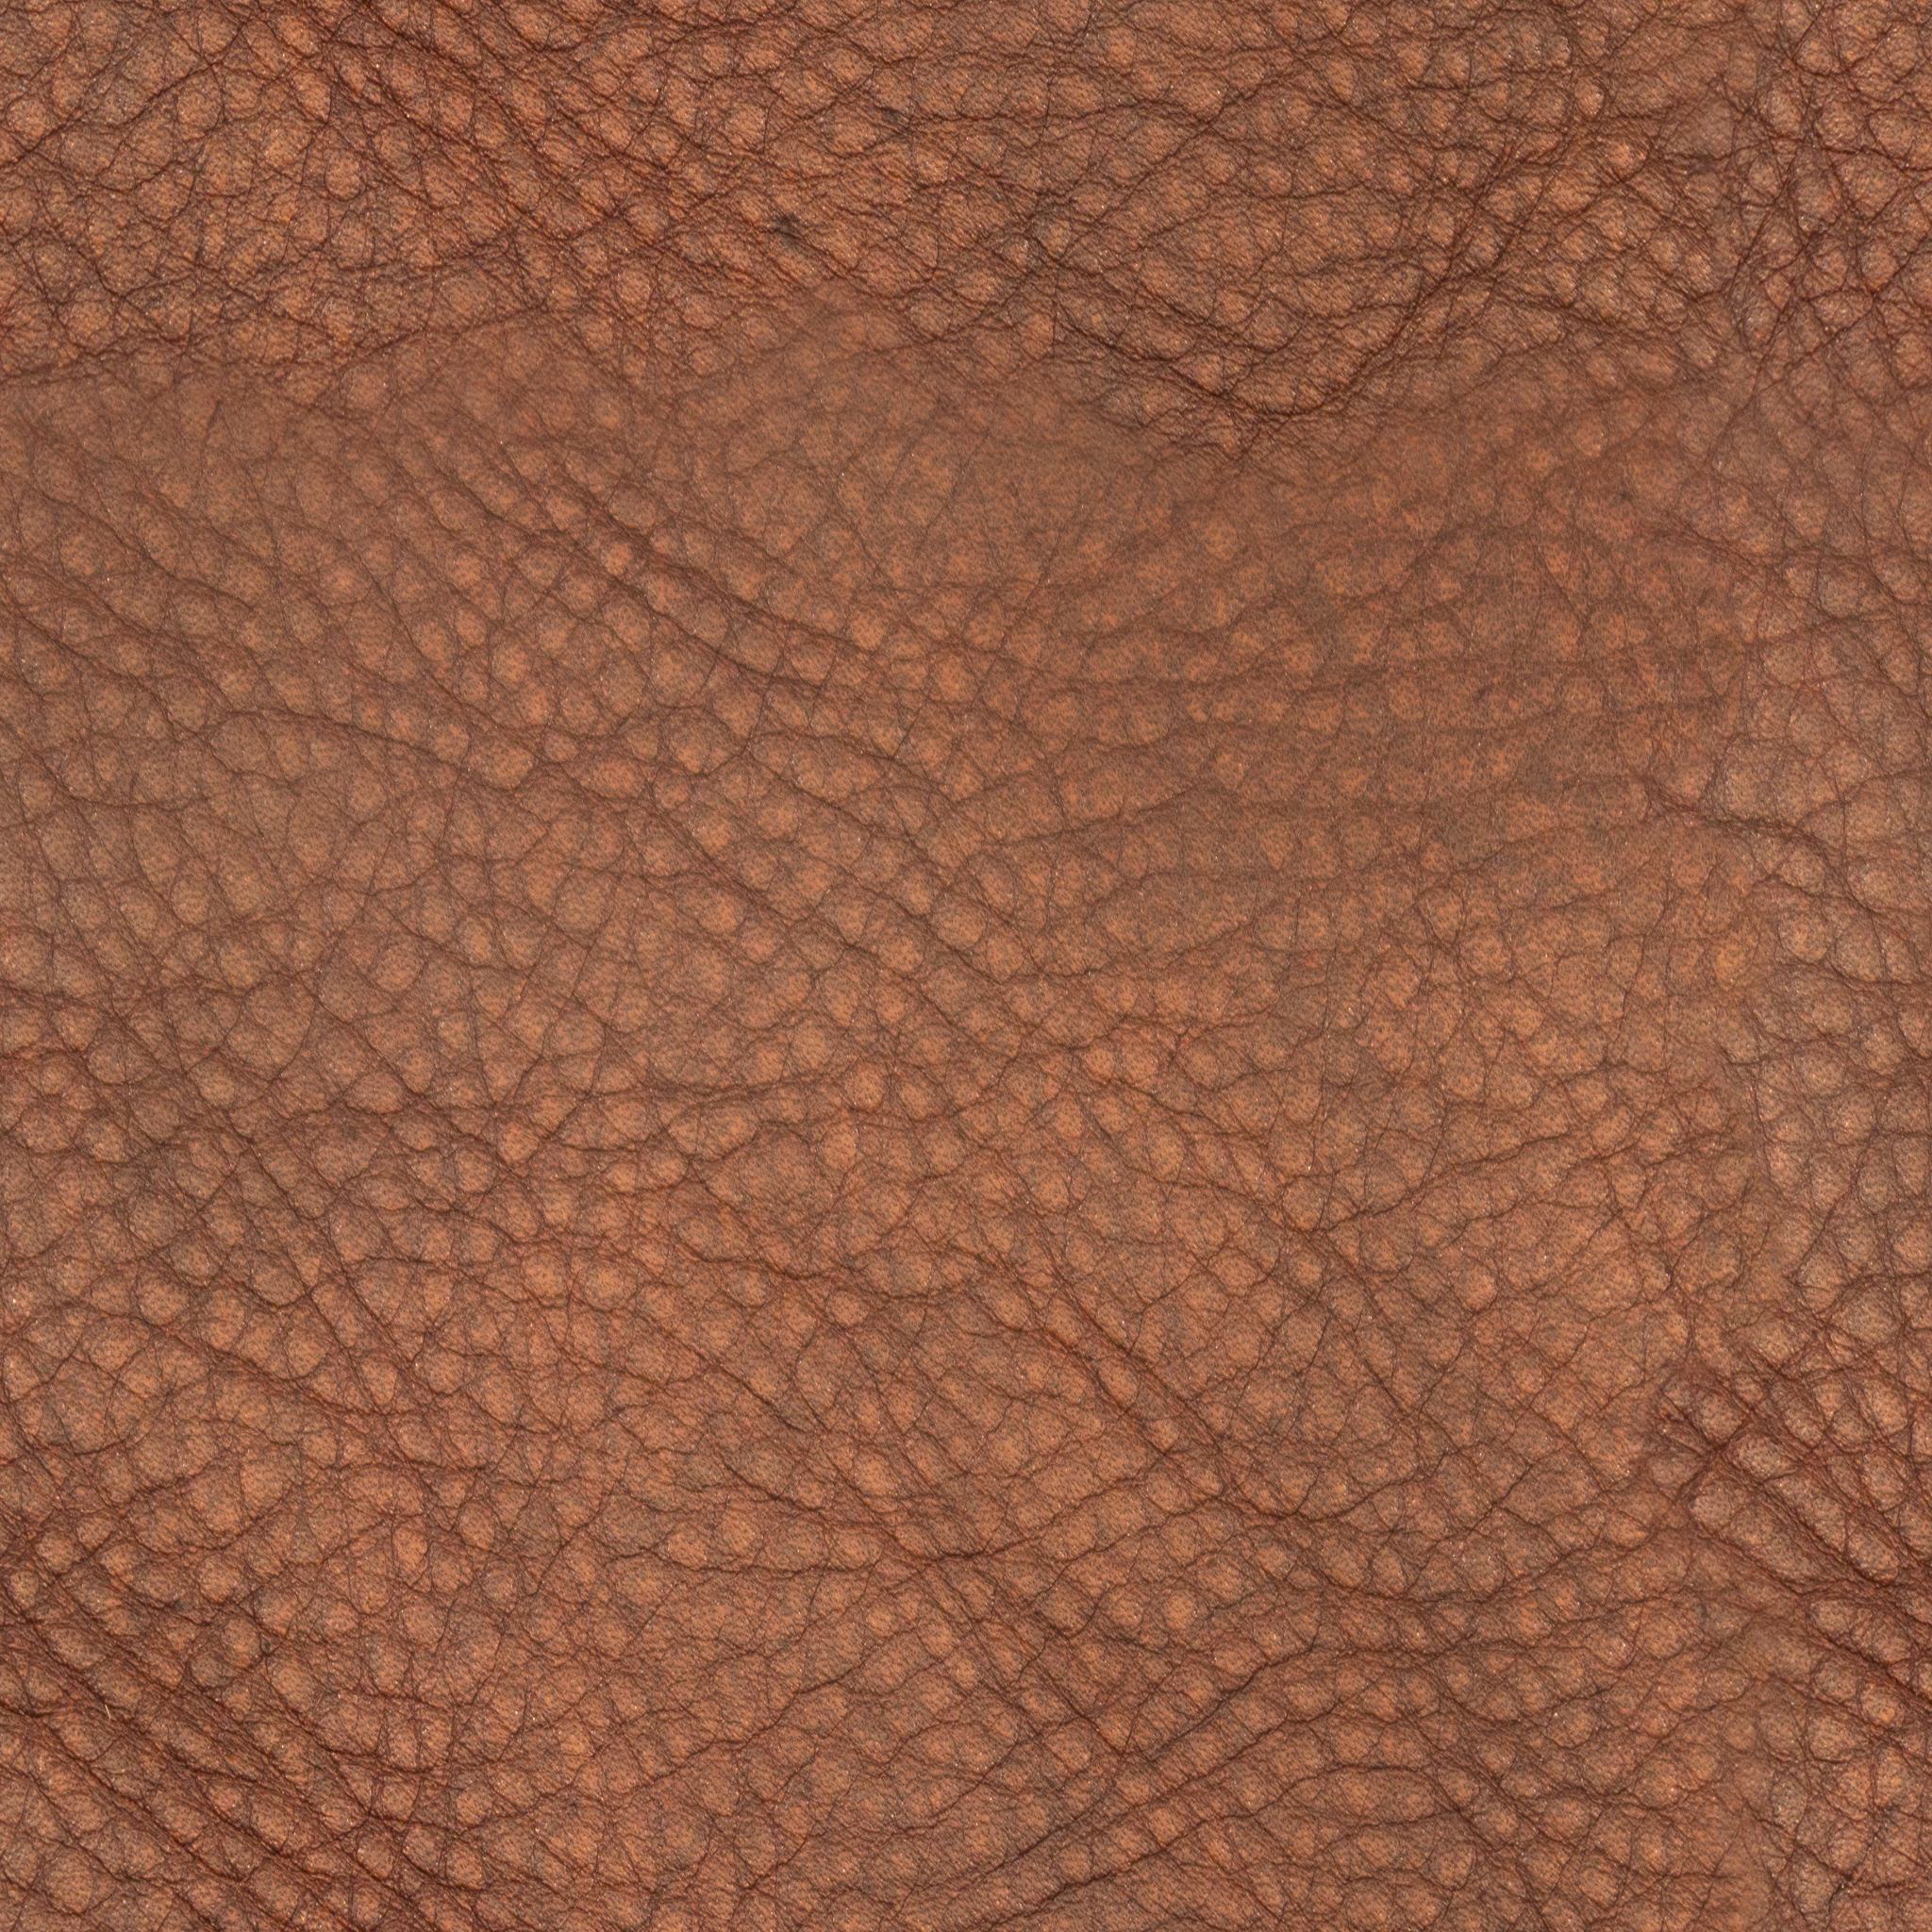 Auburn Rough Leather.jpg